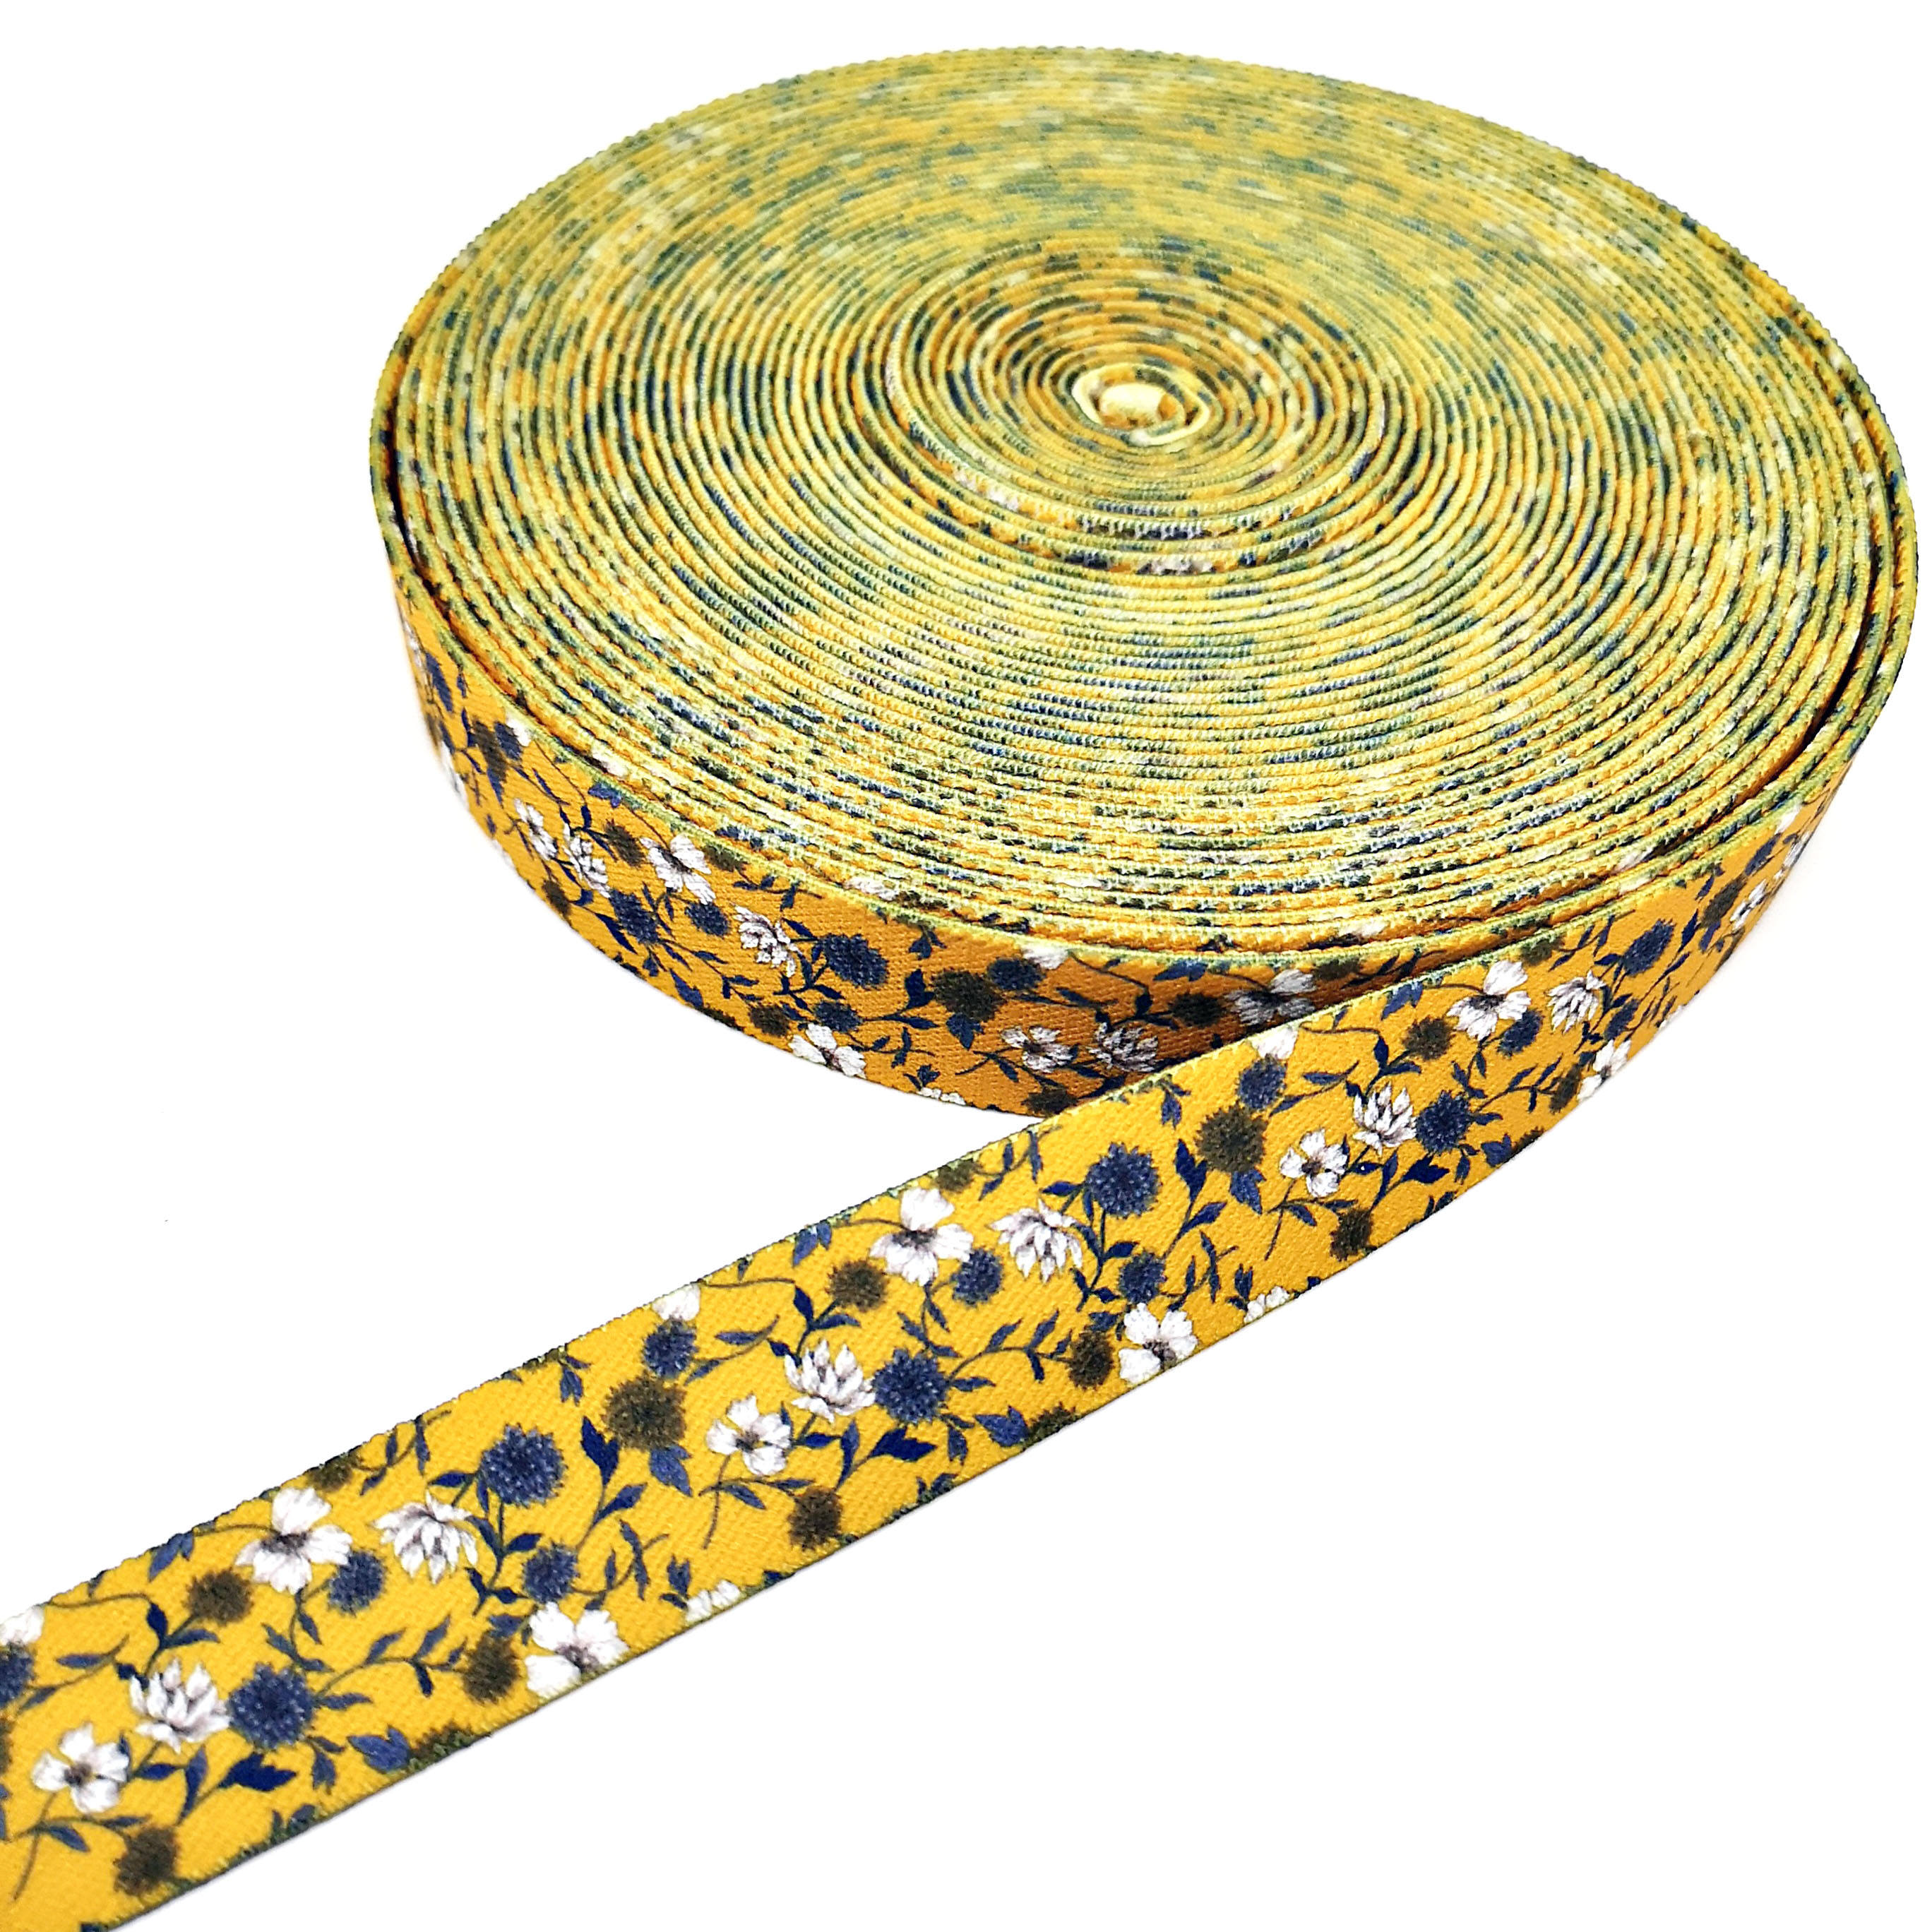 Packaging Customization [ Elastic ] Elastic Ribbon Personality Custom Dye Sublimation Printed Elastic Band Ribbon #elasticbandribbon